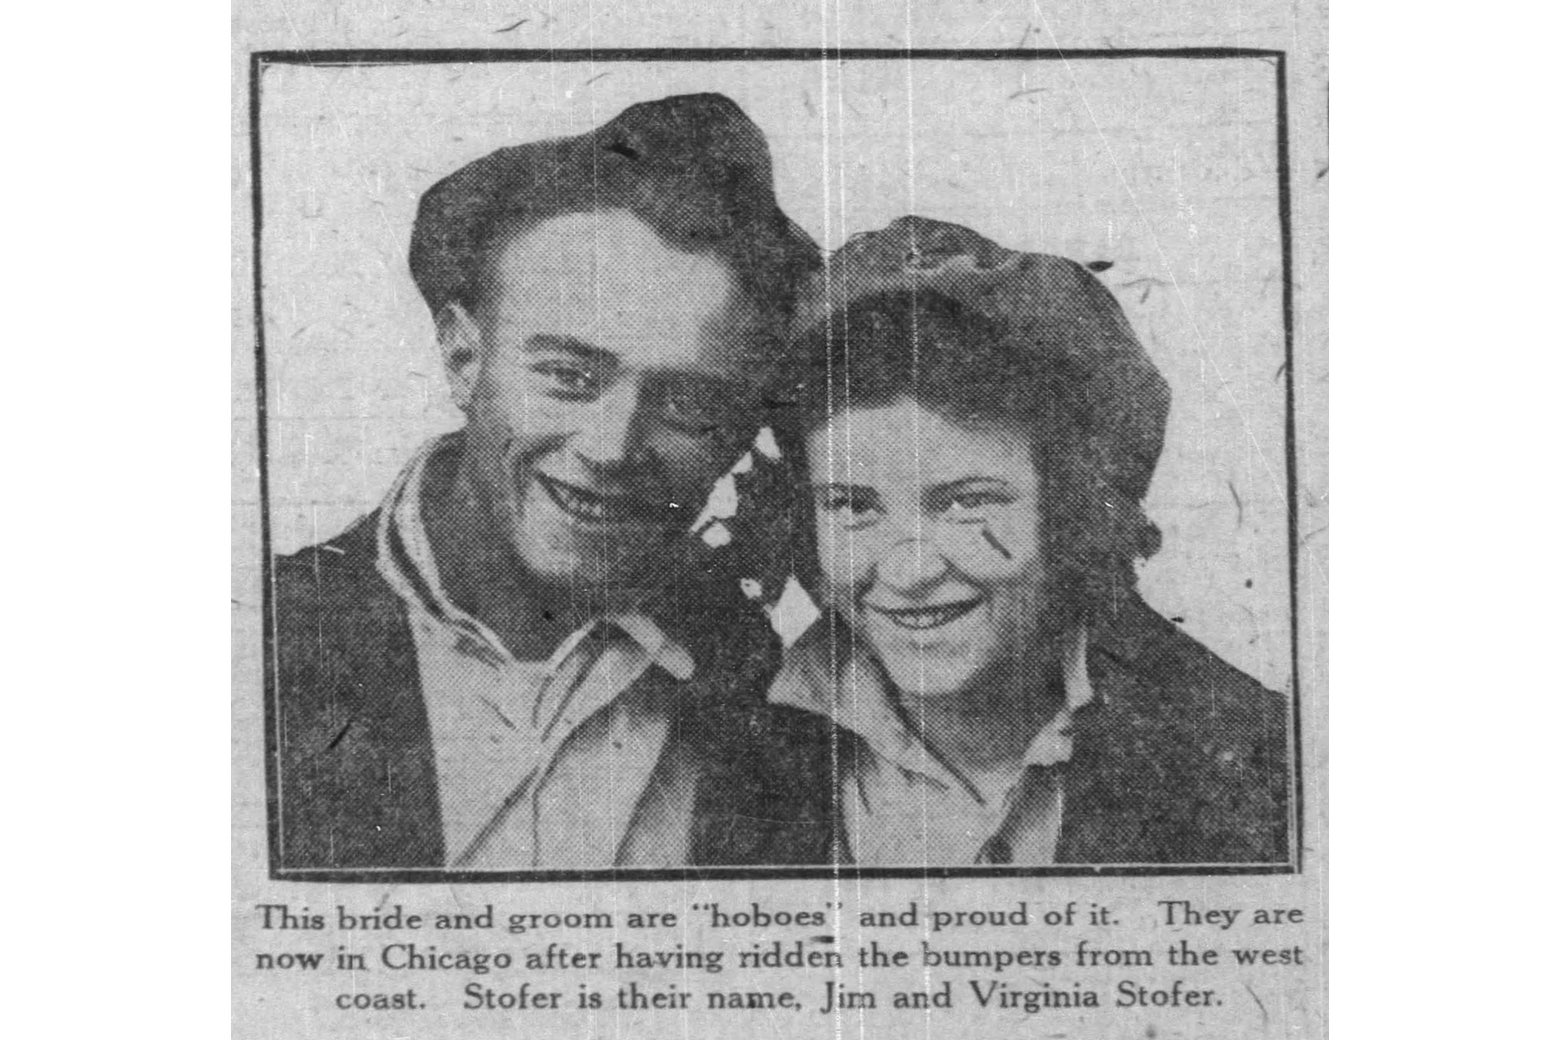 Jim and Virginia Stopher, in a 1922 news clip about their hobo honeymoon.